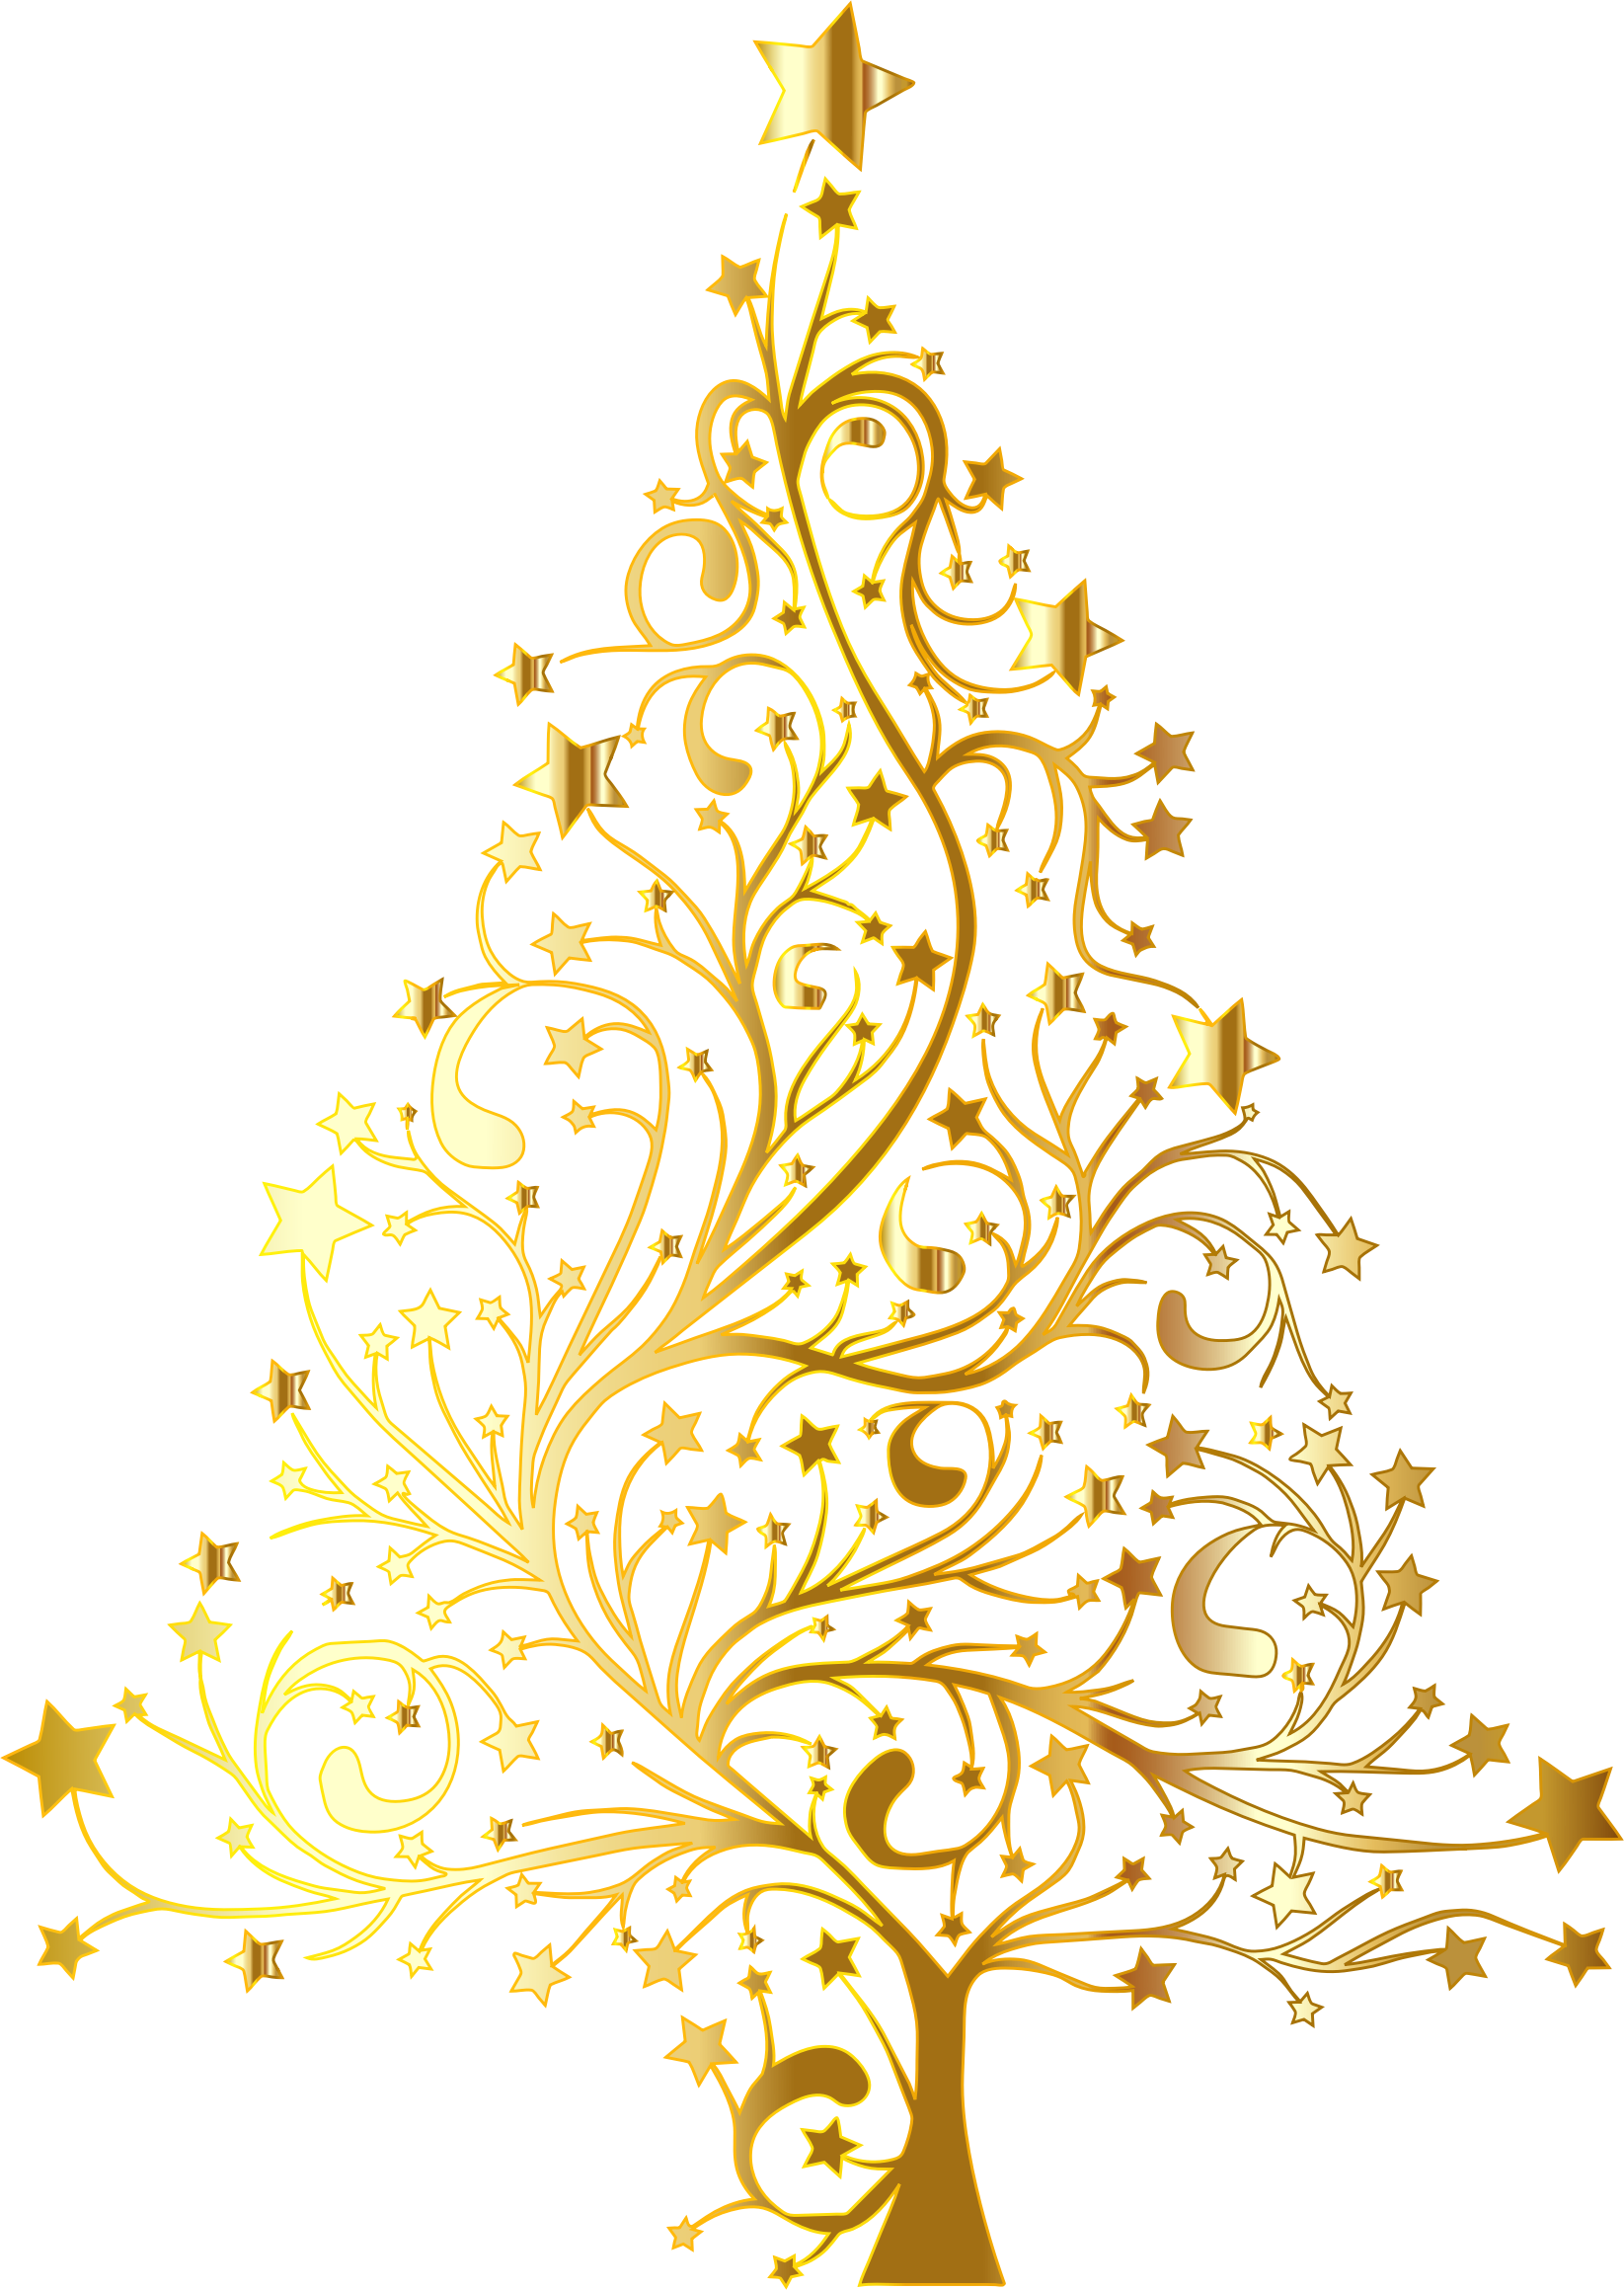 Music note clipart christmas tree. Rustic picture library rr